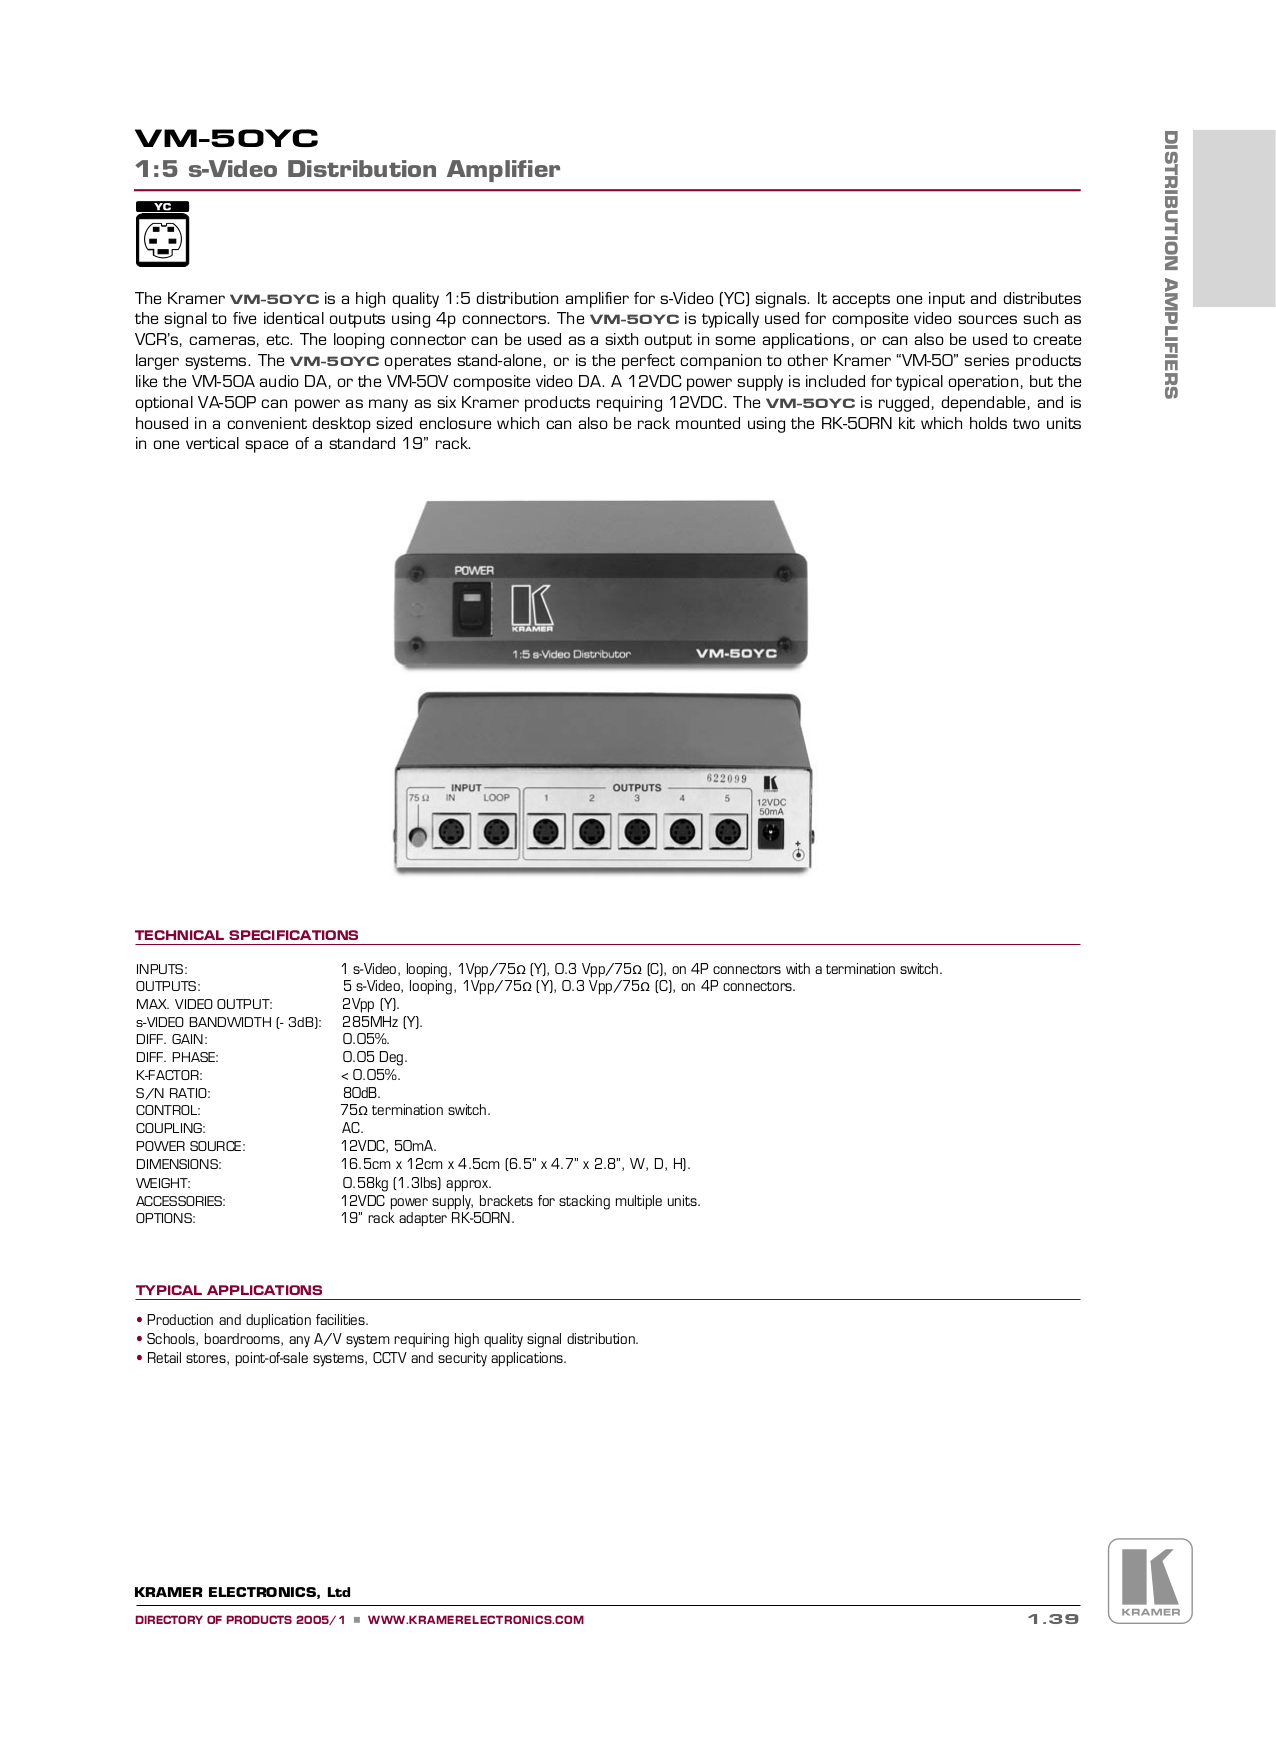 pdf for Kramer Other VM-50YC Distribution Amplifiers manual